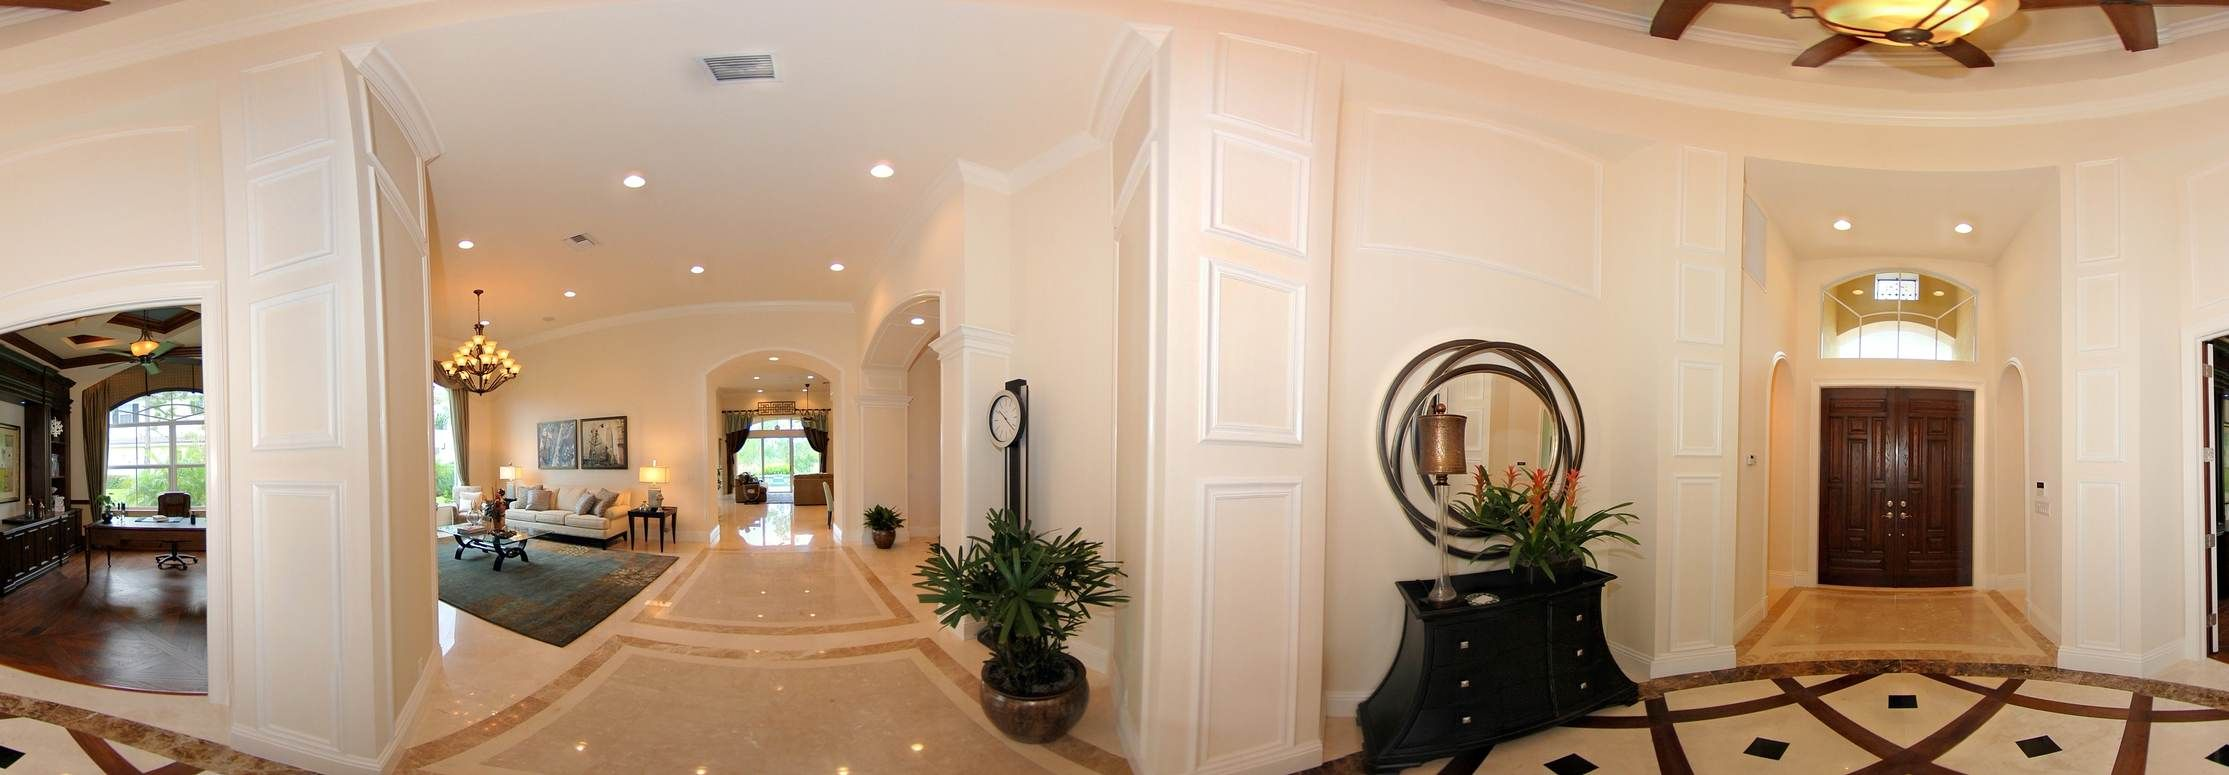 Foyer & Front Office